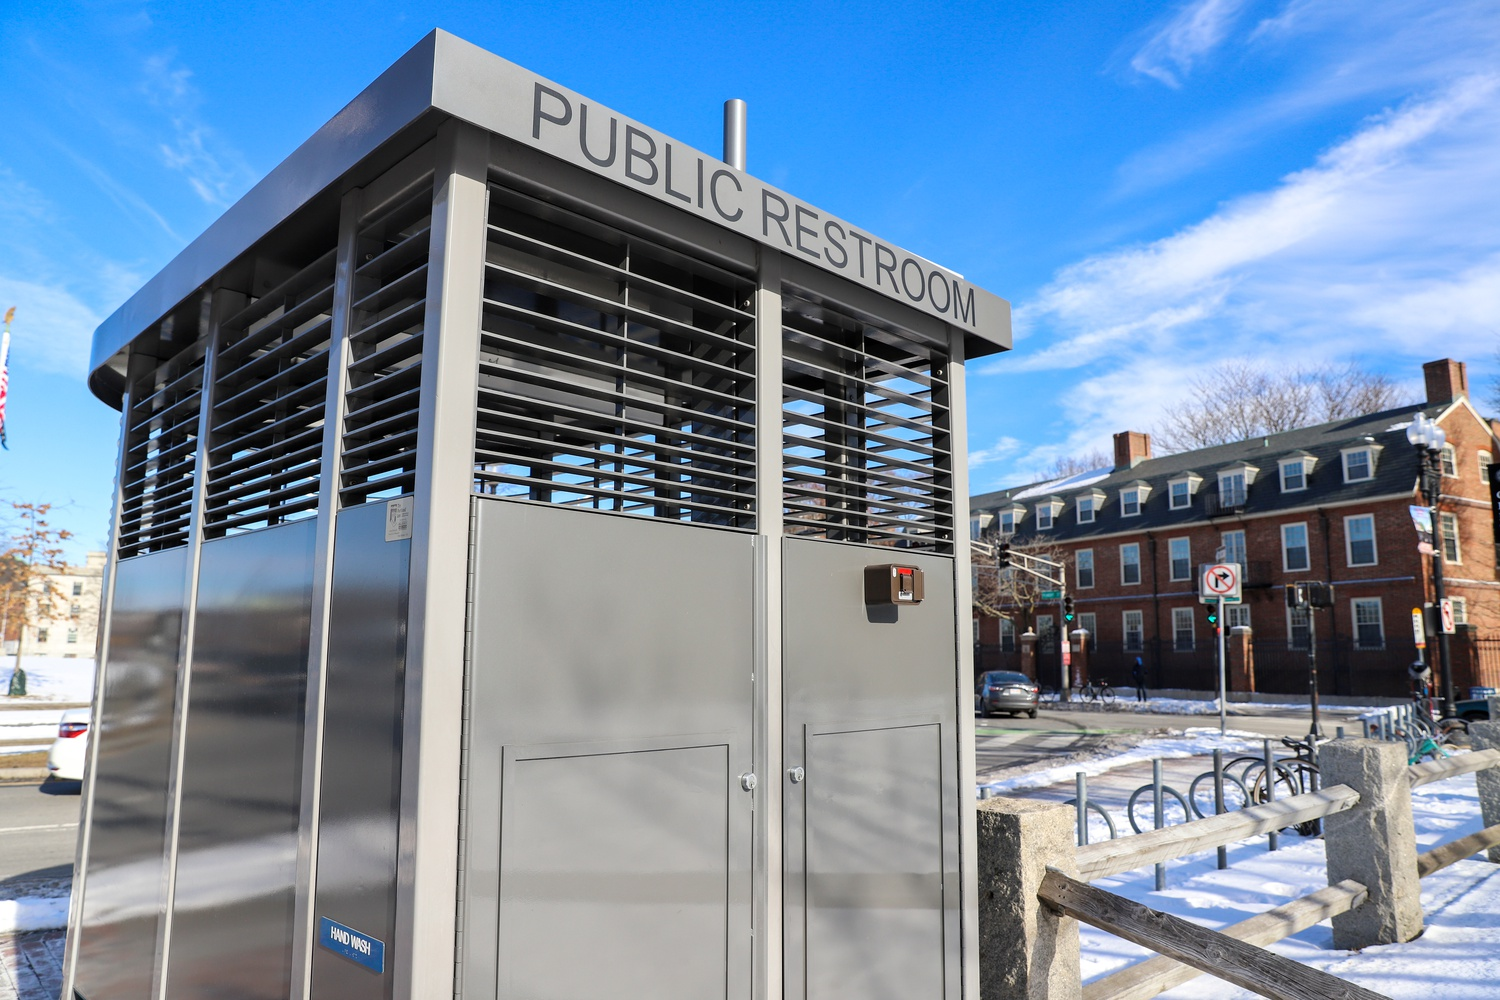 The Harvard Square public toilet was the first of its kind in Cambridge, free to the public and accessible 24 hours a day.